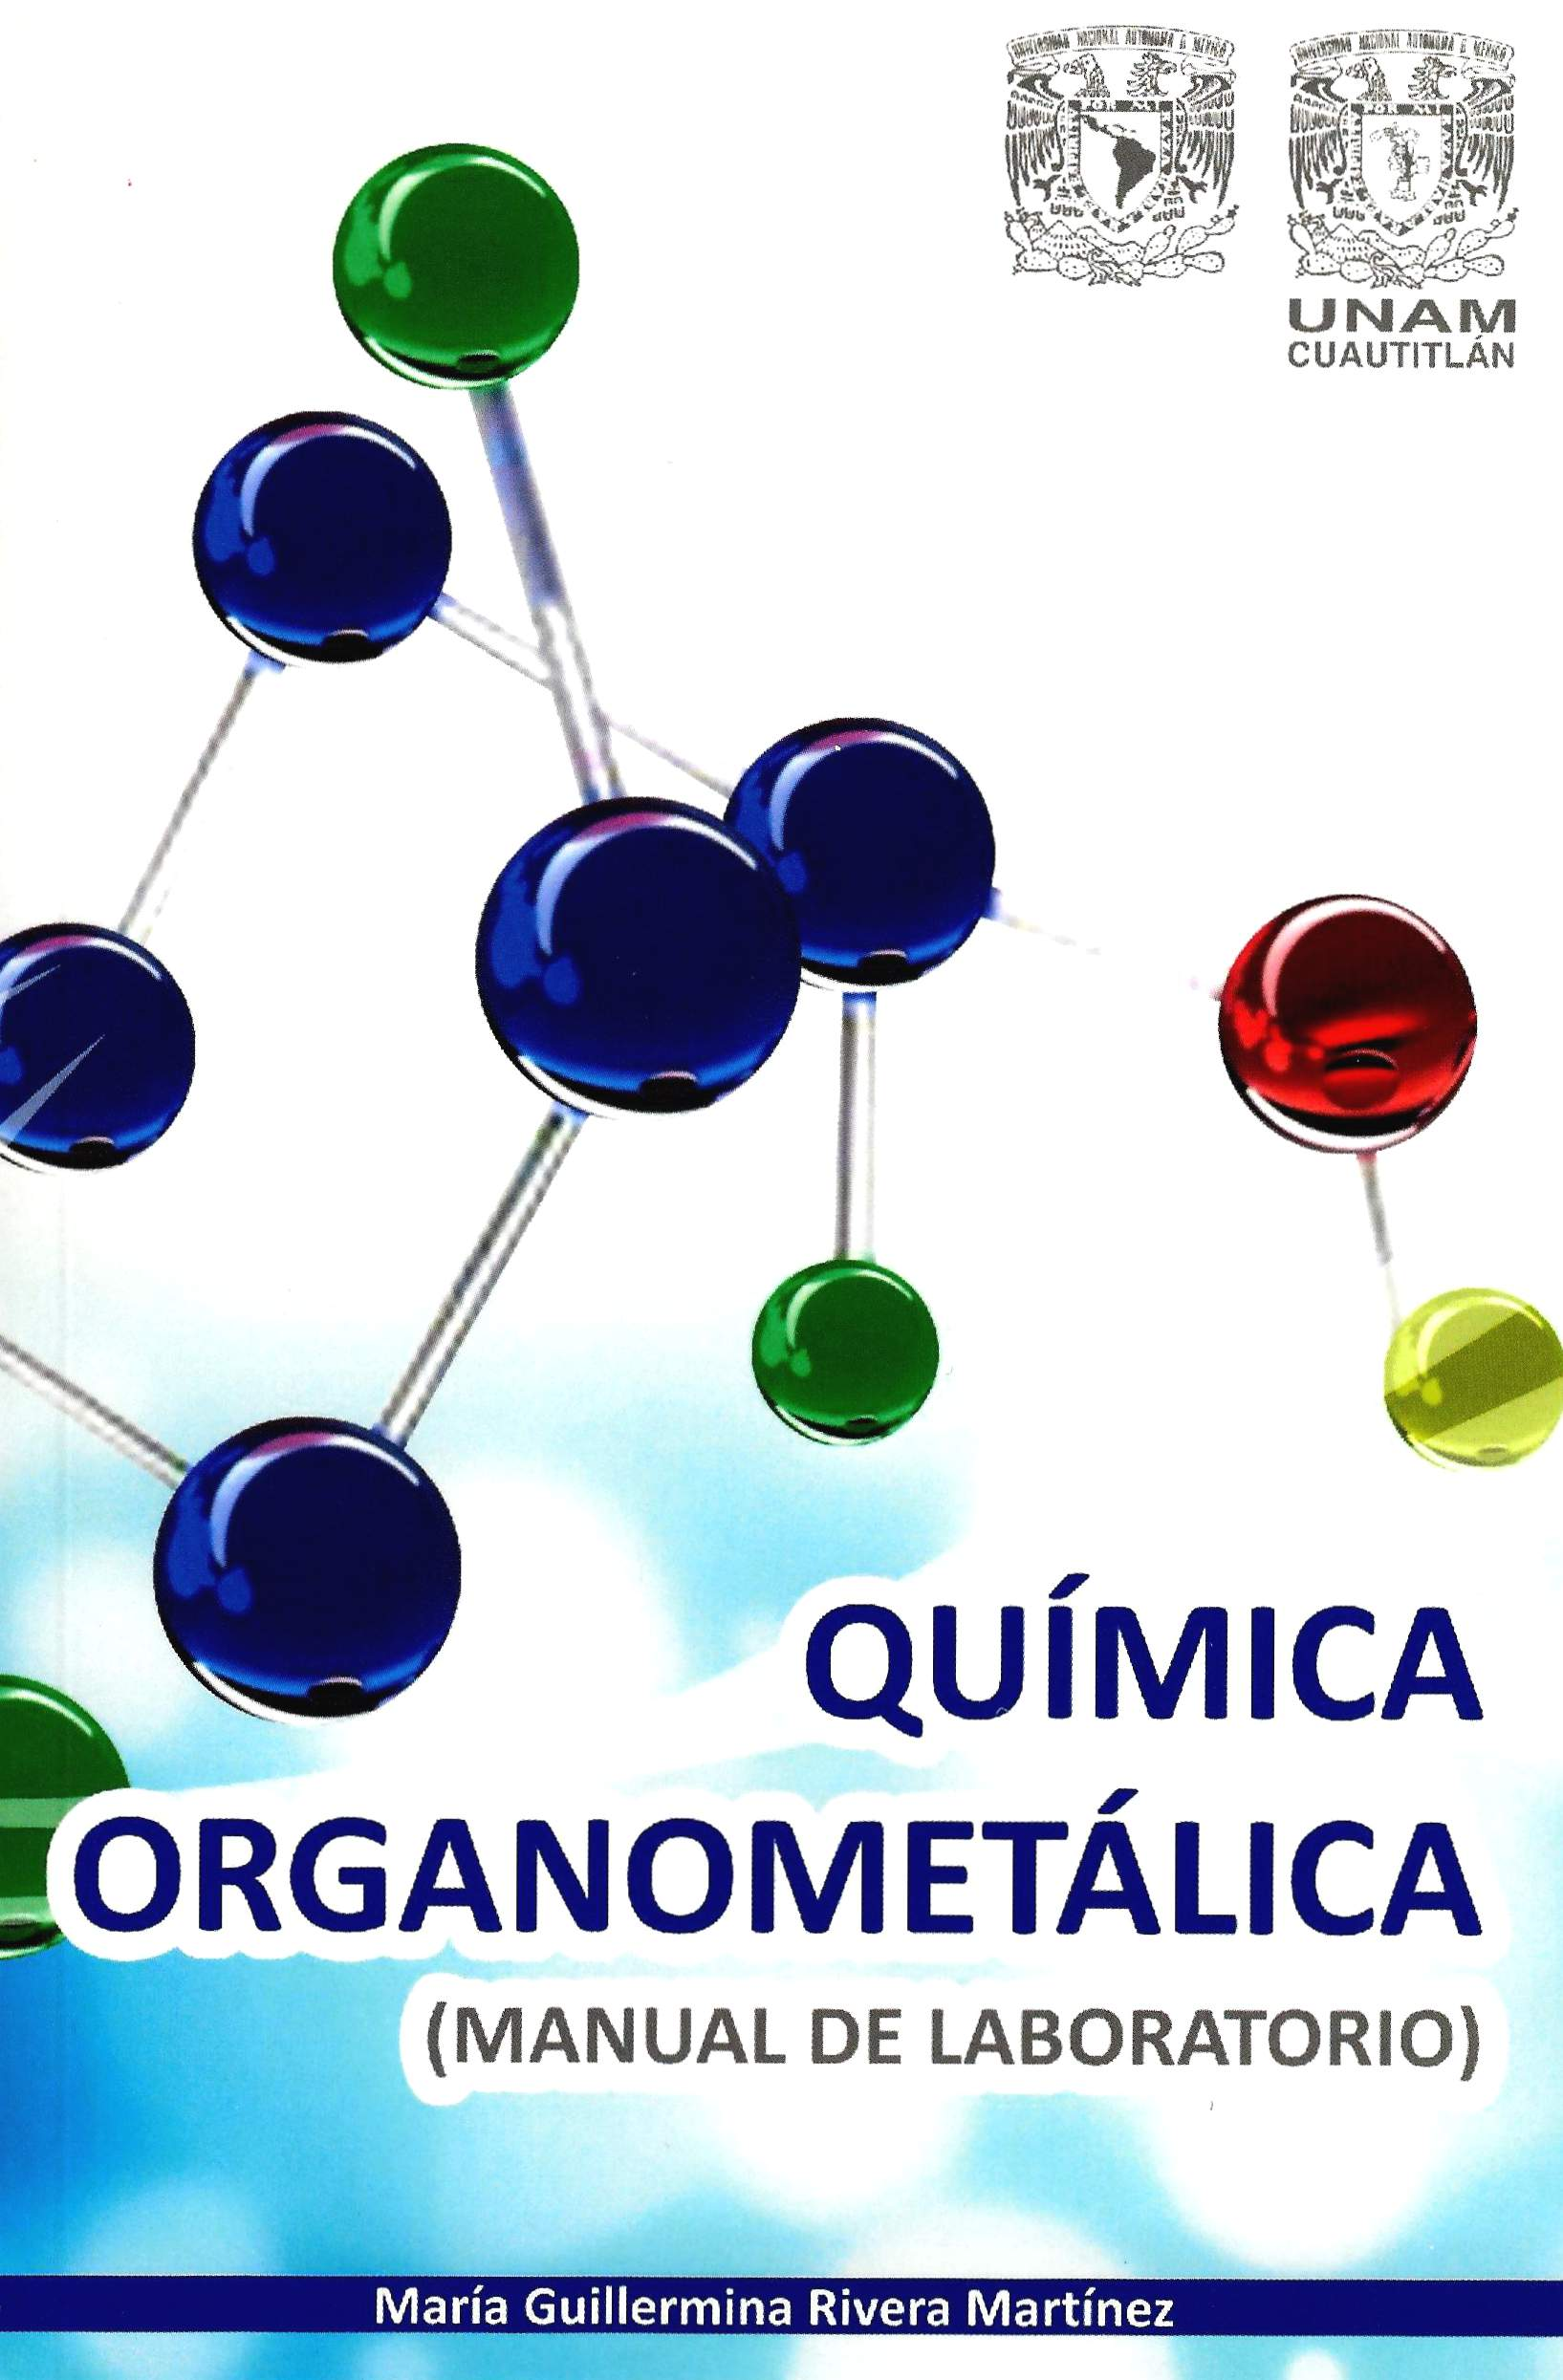 Química organometálica (manual de laboratorio)